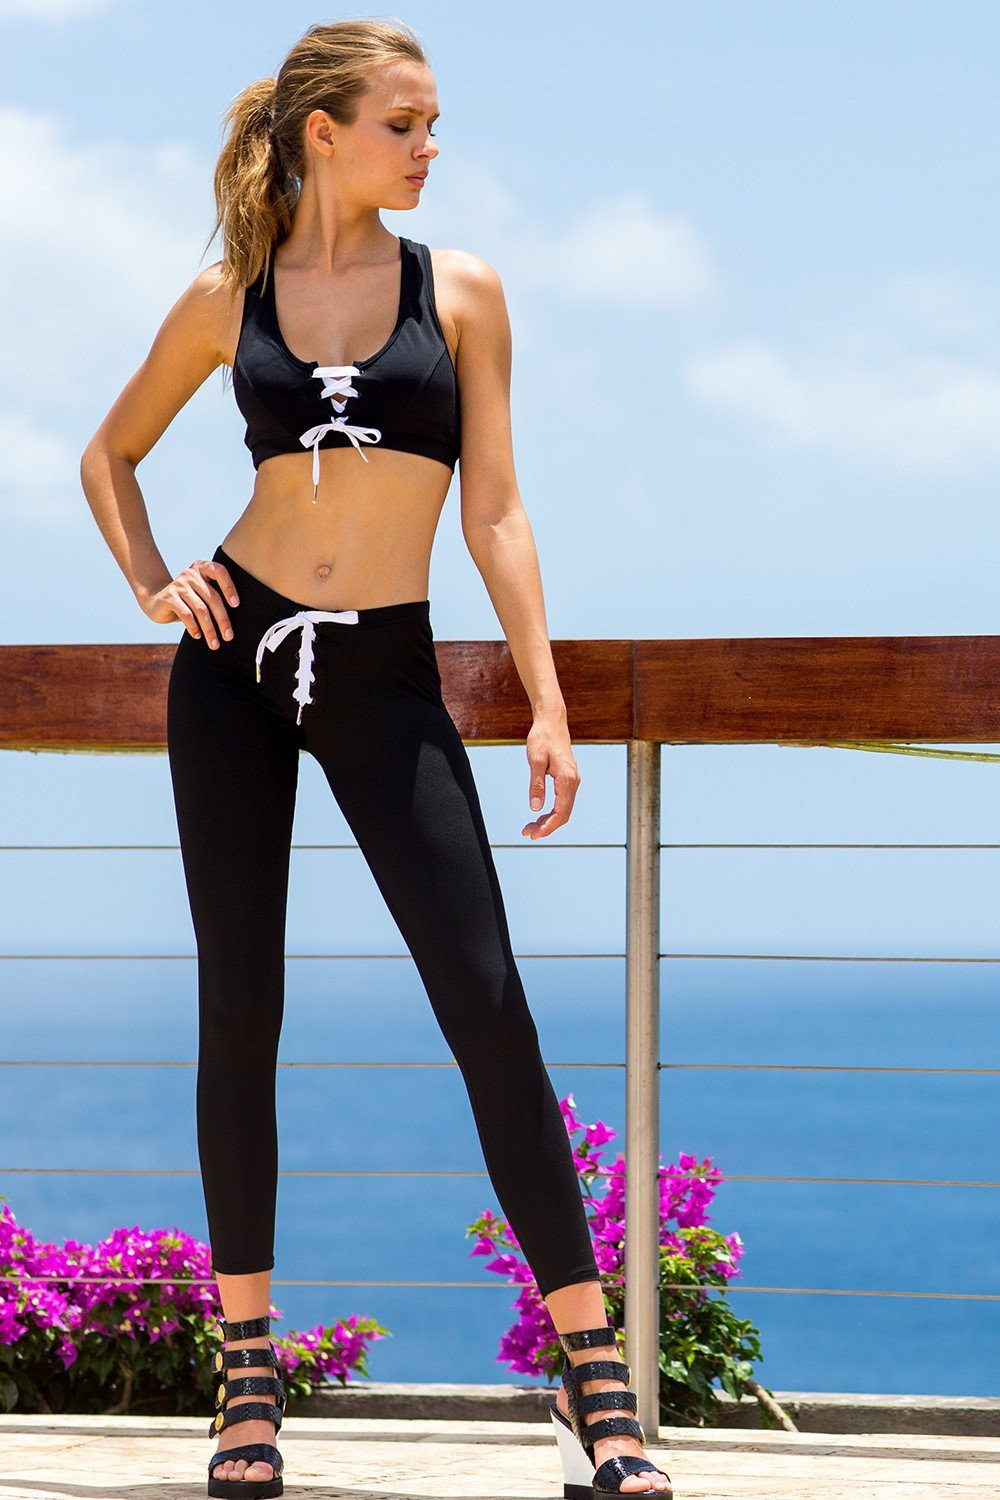 Sauvage Swimwear, Designer Swimwear from San Diego, CA made in usaAthletic Lace-Up Workout Pant, , , Sauvage Swimwear, Sauvage - 1